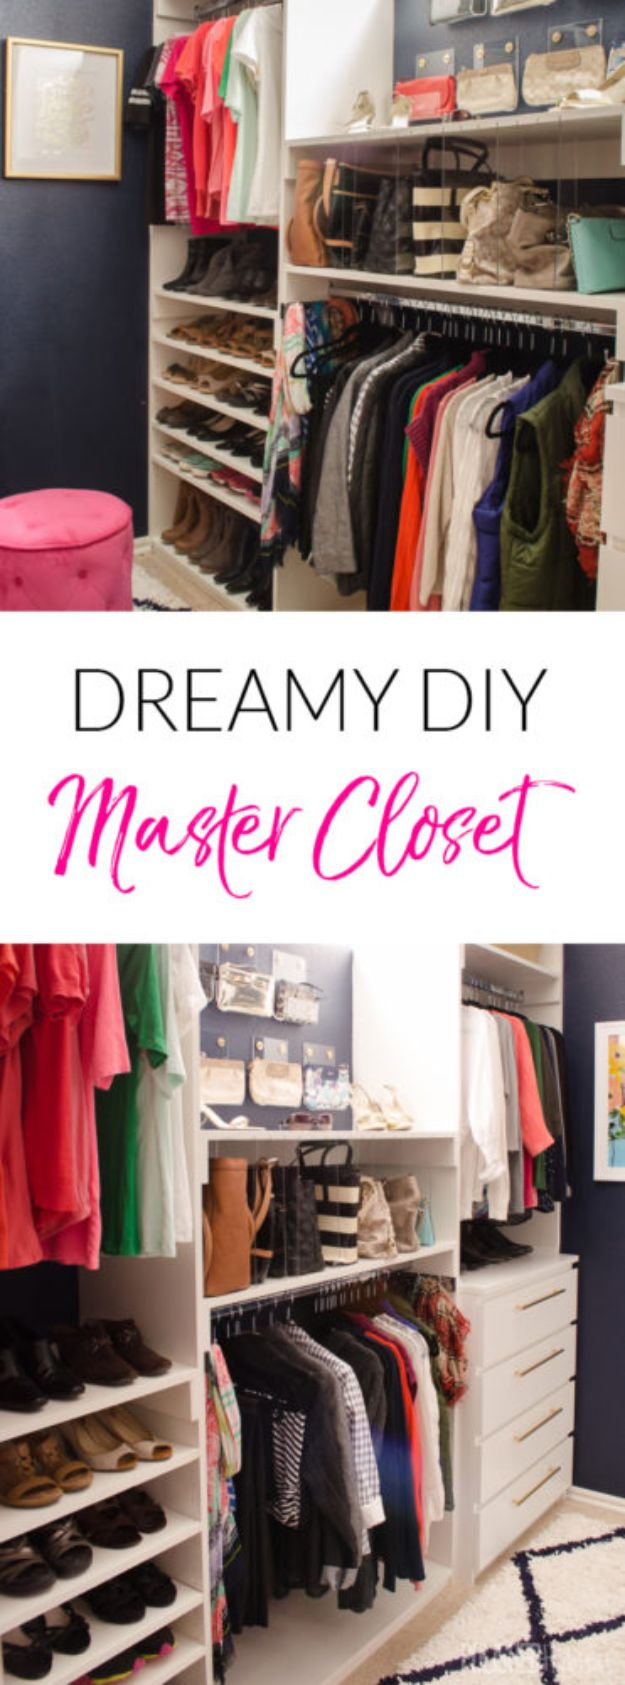 Closet Organization Ideas - Dreamy DIY Master Closet - DIY Closet Organizing Tutorials - Hacks, Tips and Tricks for Closets With Storage, Shoe Racks, Small Space Idea - Projects for Bedroom, Kids, Master, Walk in